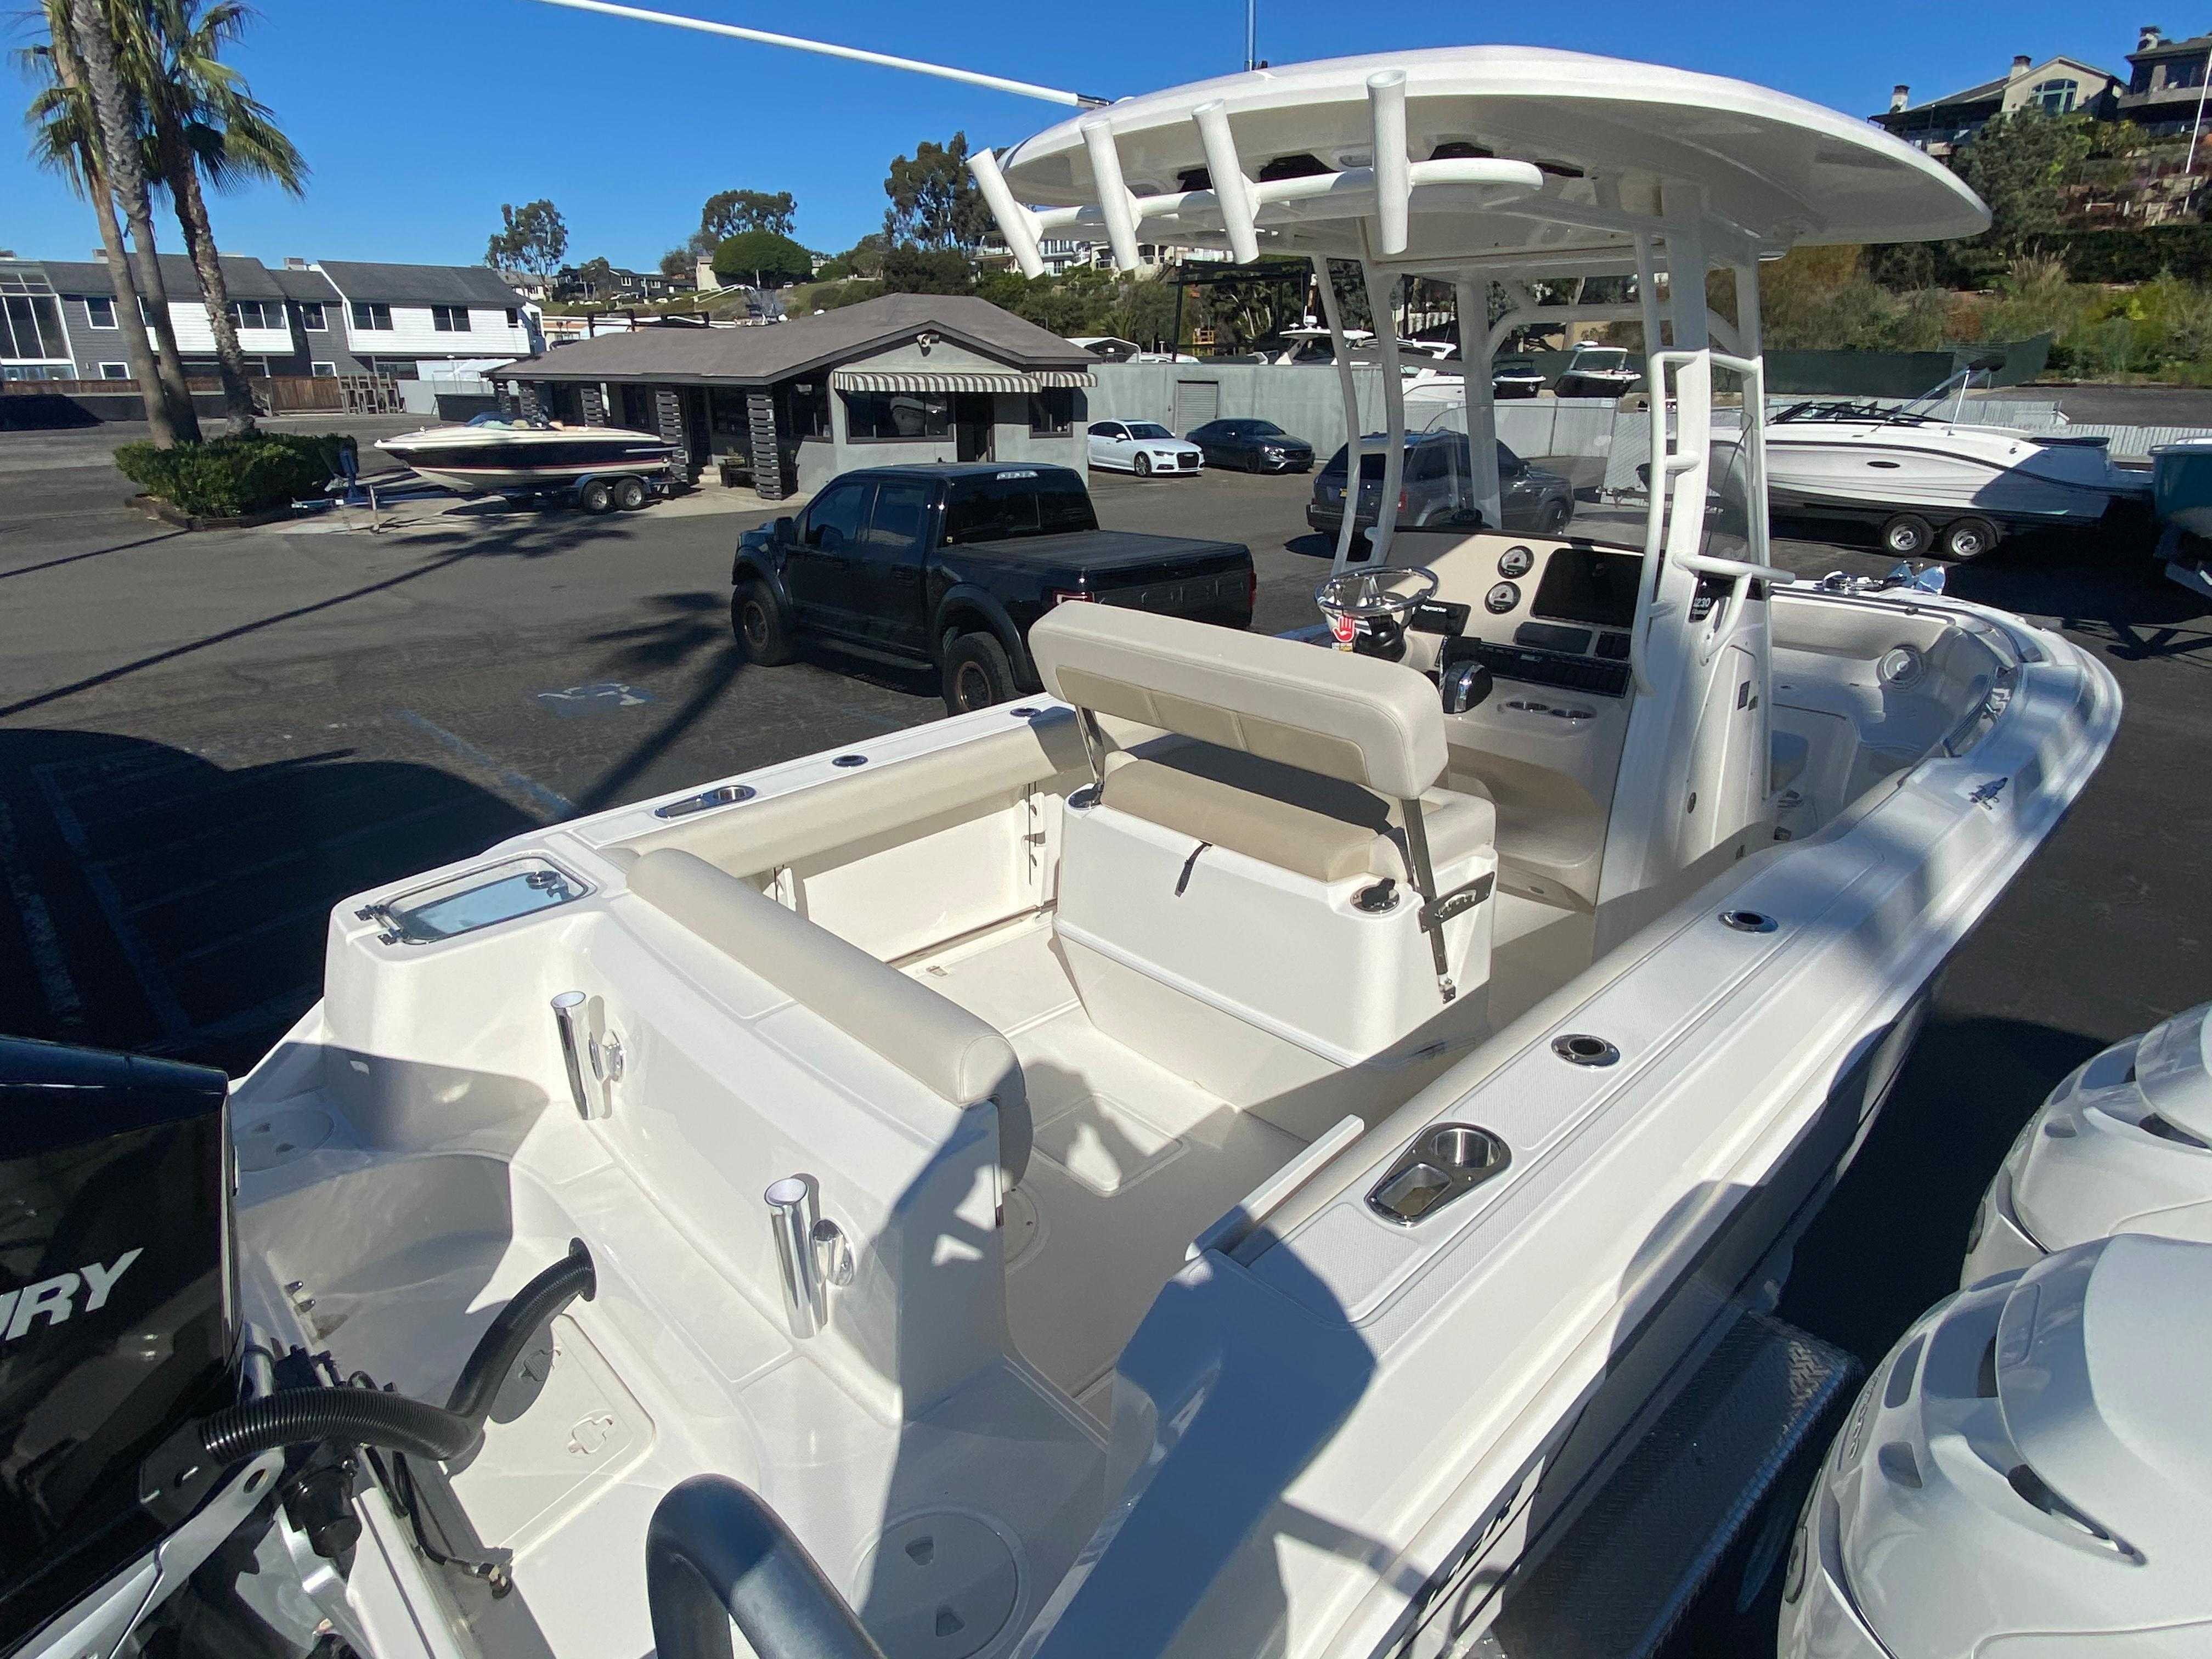 2021 Boston Whaler 230 Outrage #BW0950J inventory image at Sun Country Coastal in Newport Beach